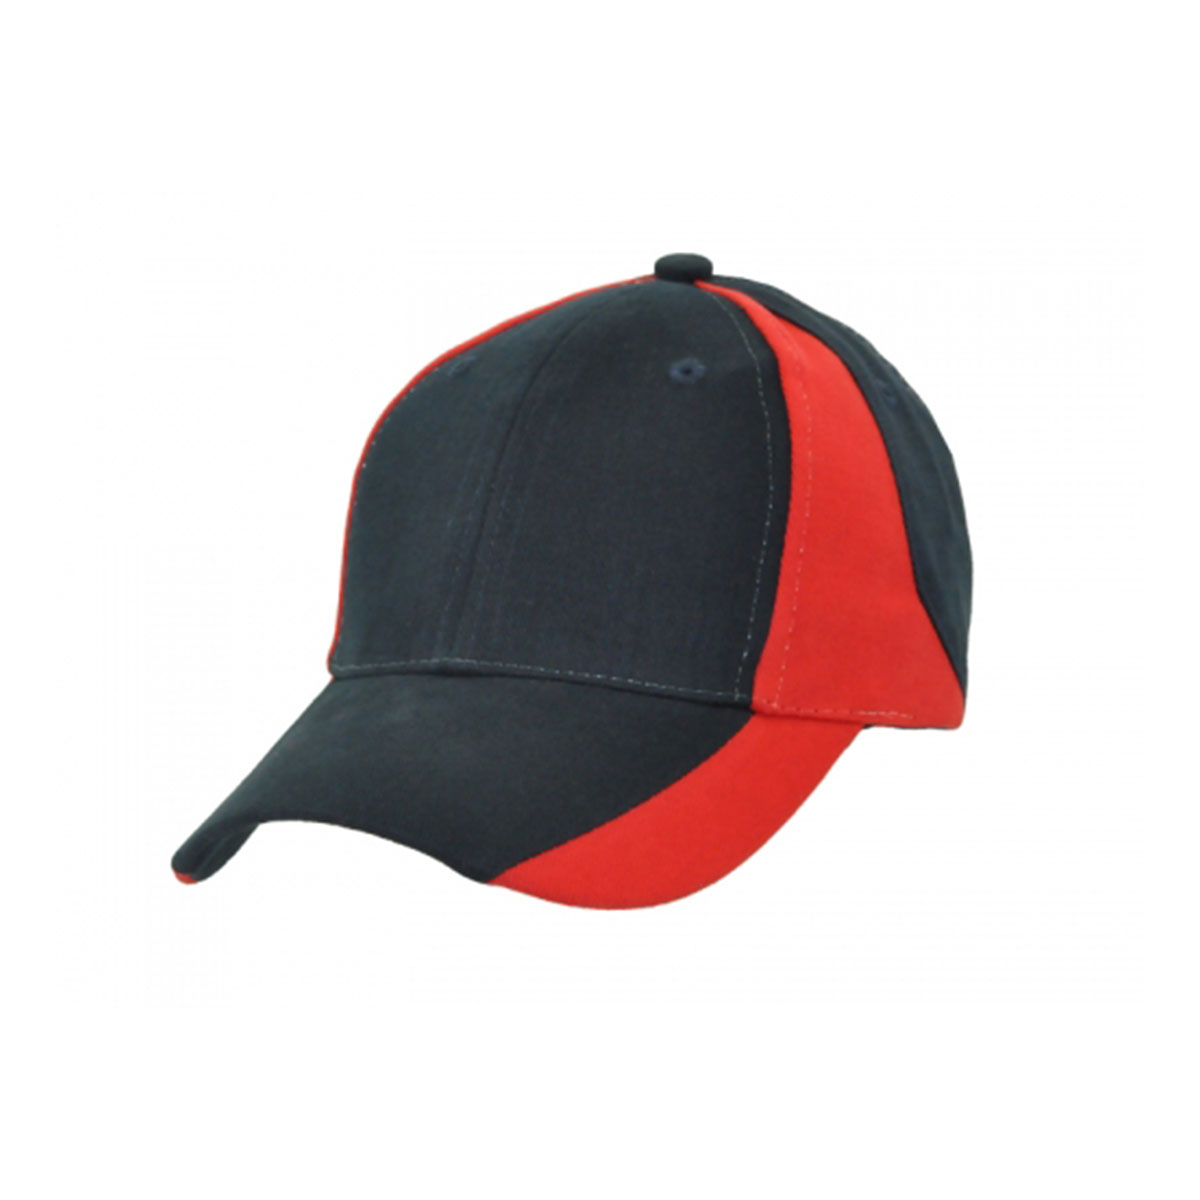 Vertek Cap-Black / Red